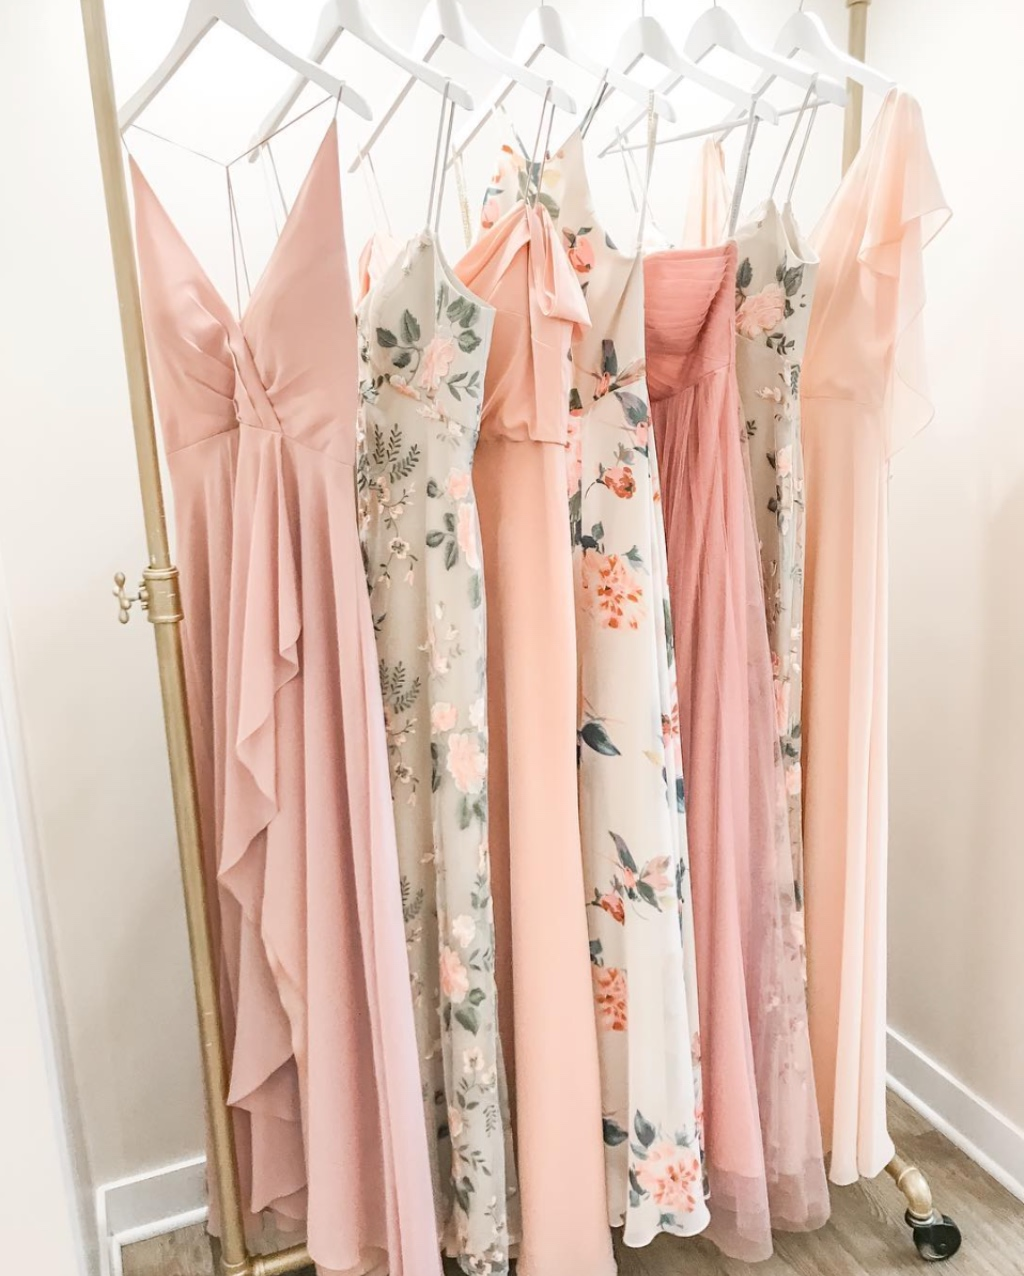 mixing prints, yay or nay? 💘 click for details! #jennyyoobridesmaids #jennyyoo